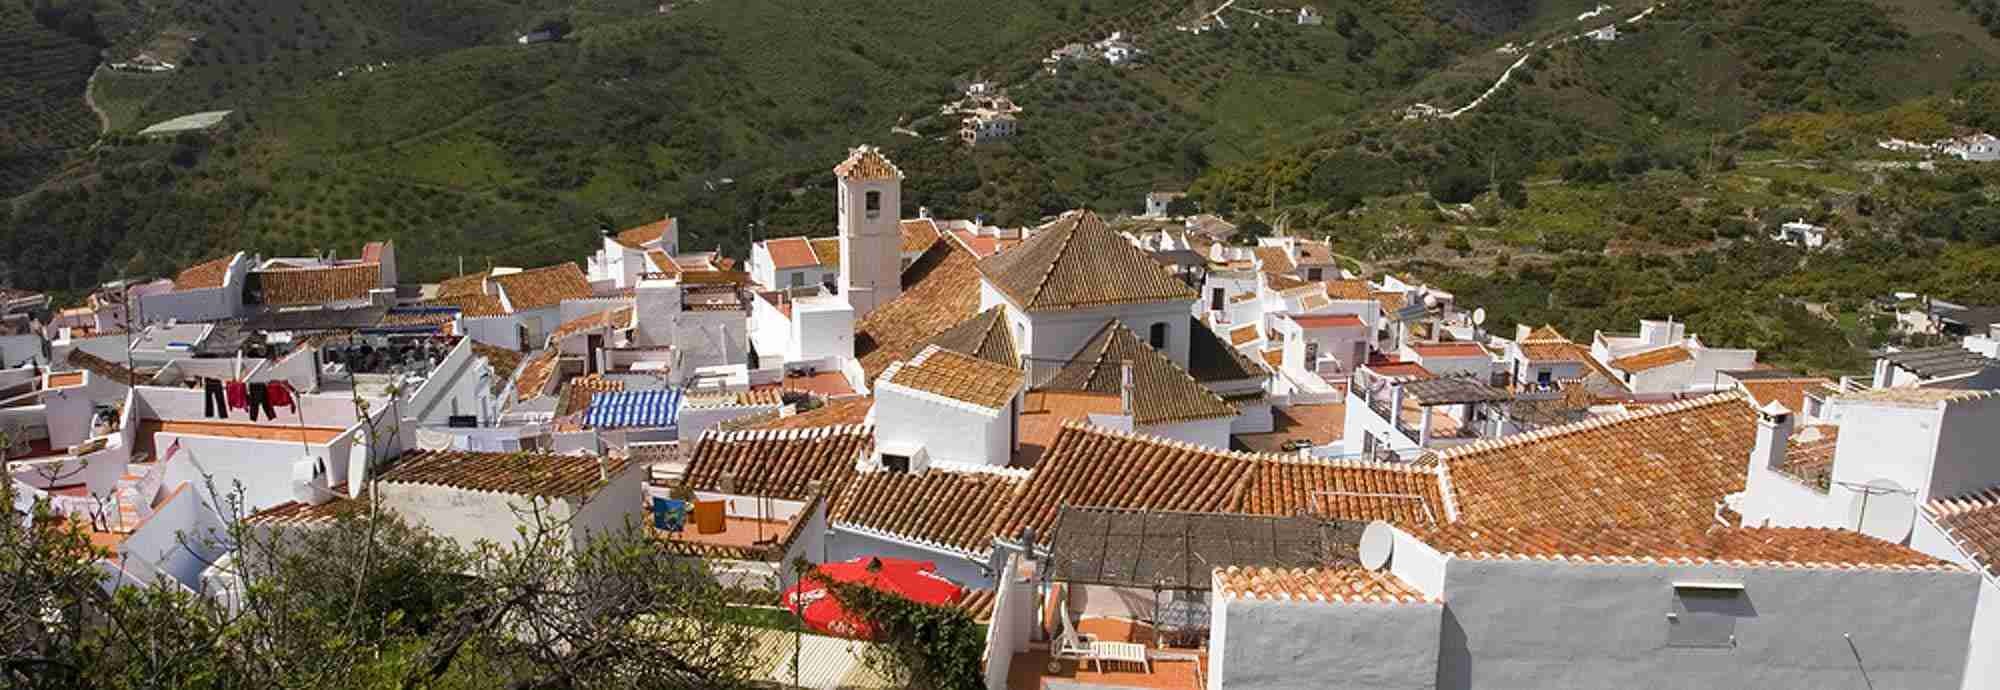 Walk into village or town Holiday  Villas in Axarquia with Wifi